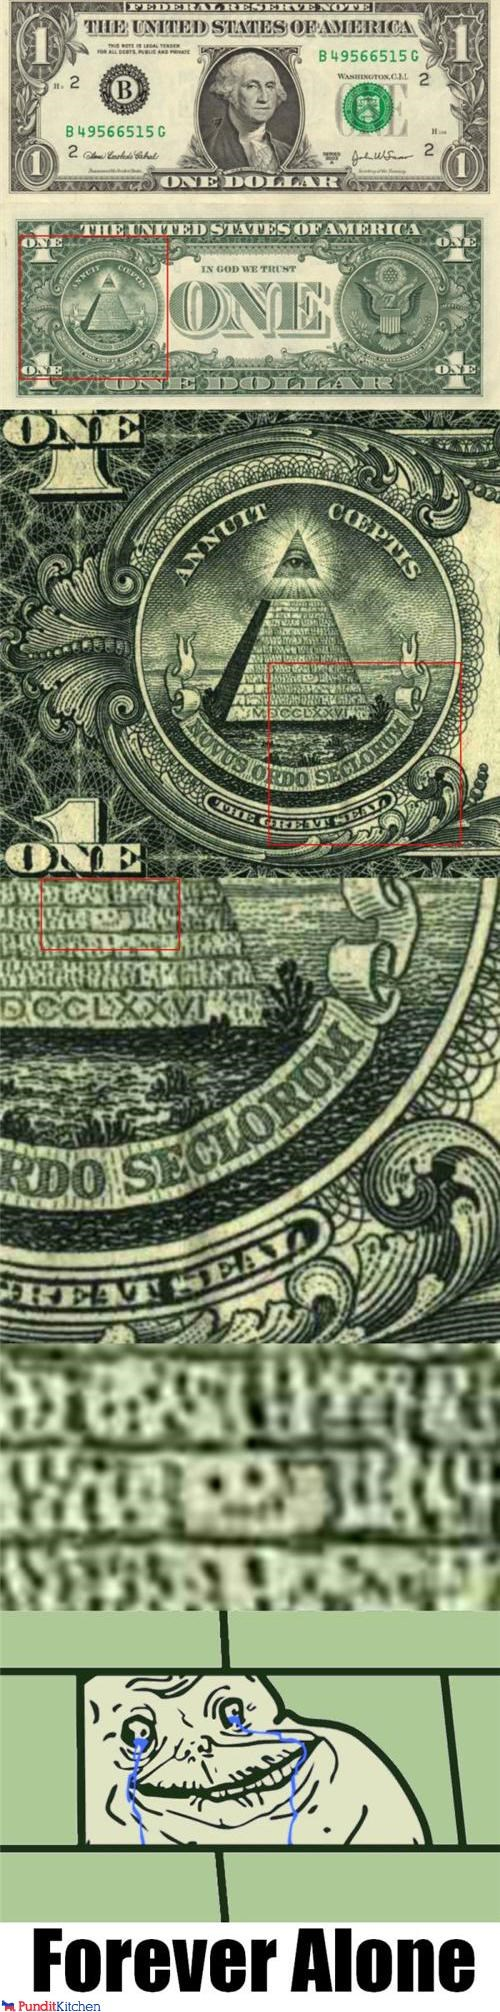 dollar,forever alone,george washington,Memes,money